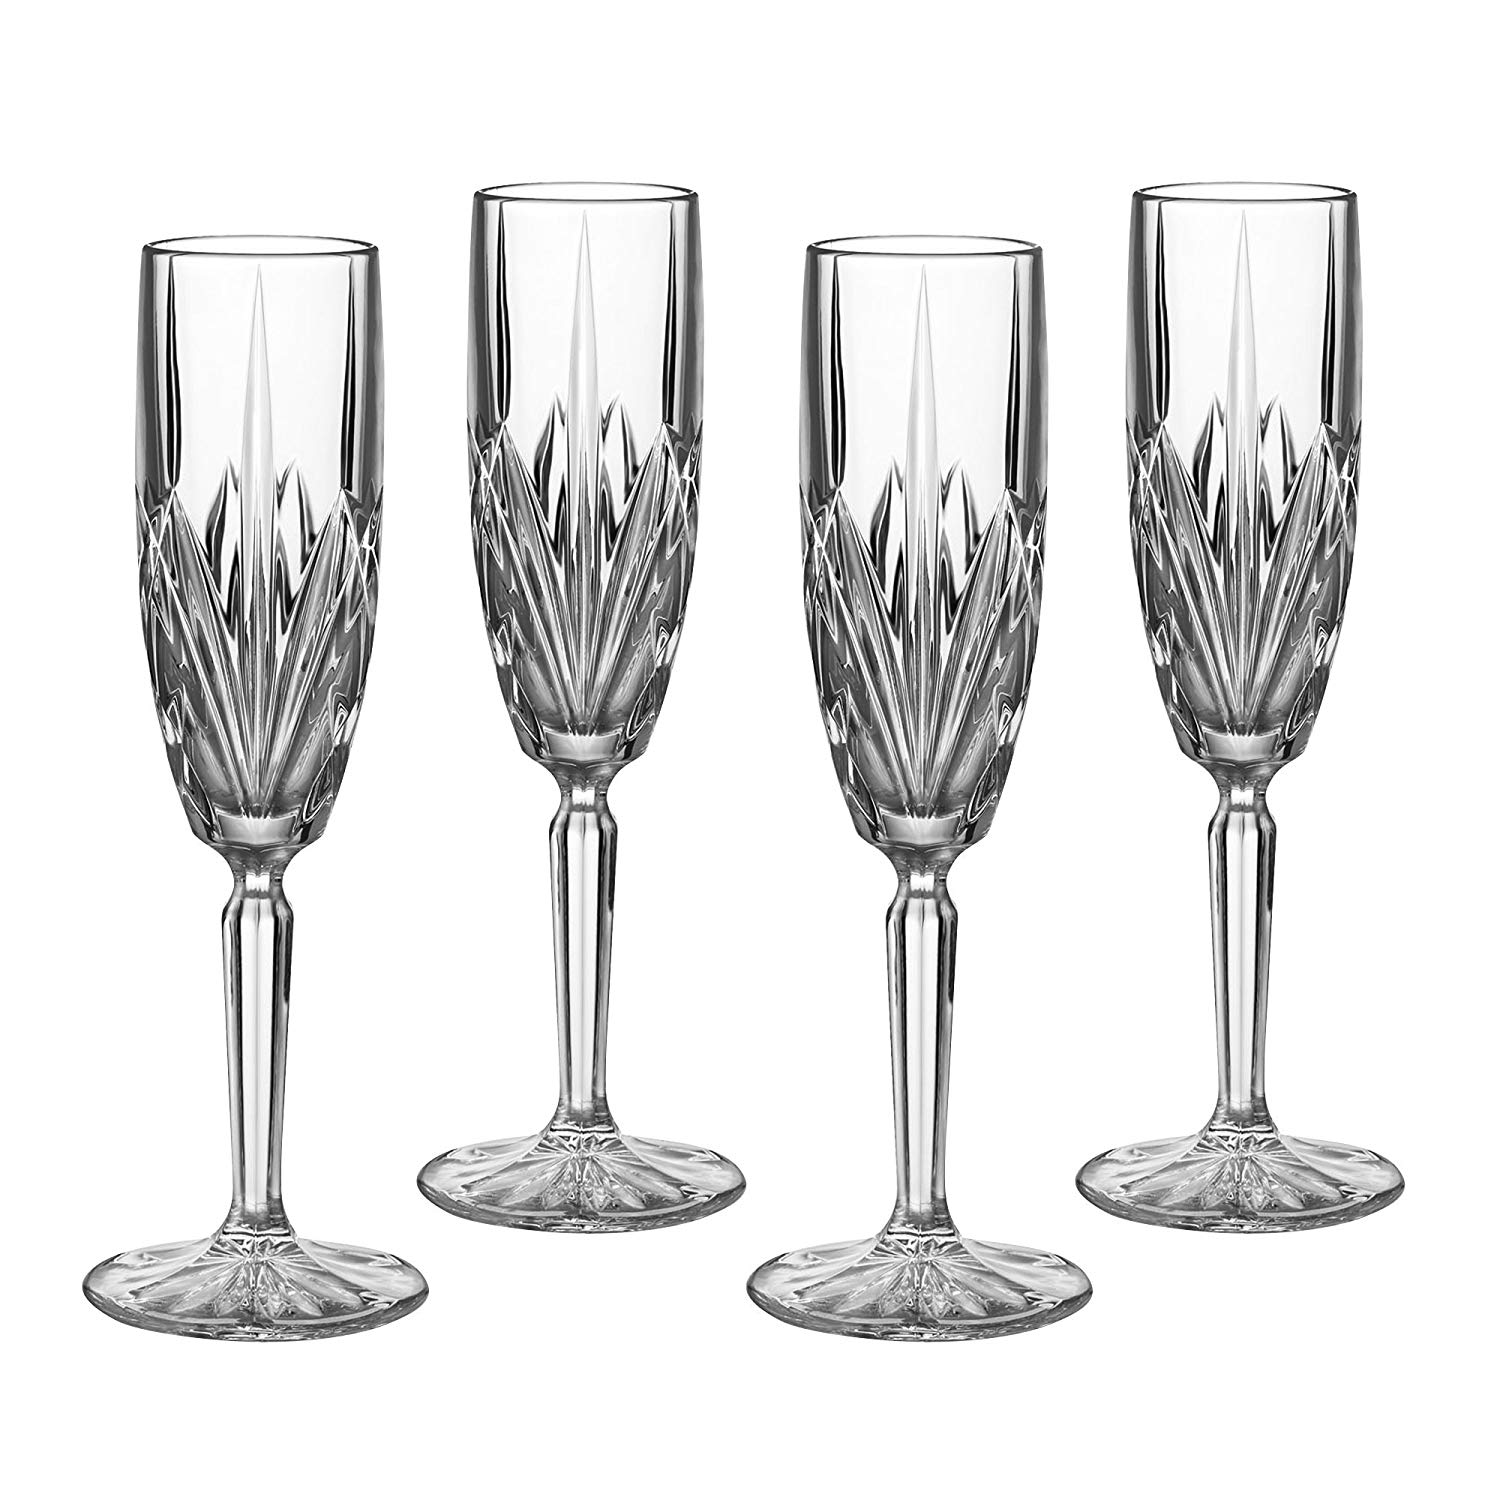 Marquis by Waterford Brookside 6-Ounce Champagne Flutes, Set of 4, FLUTE 6 OZ SET OF 4